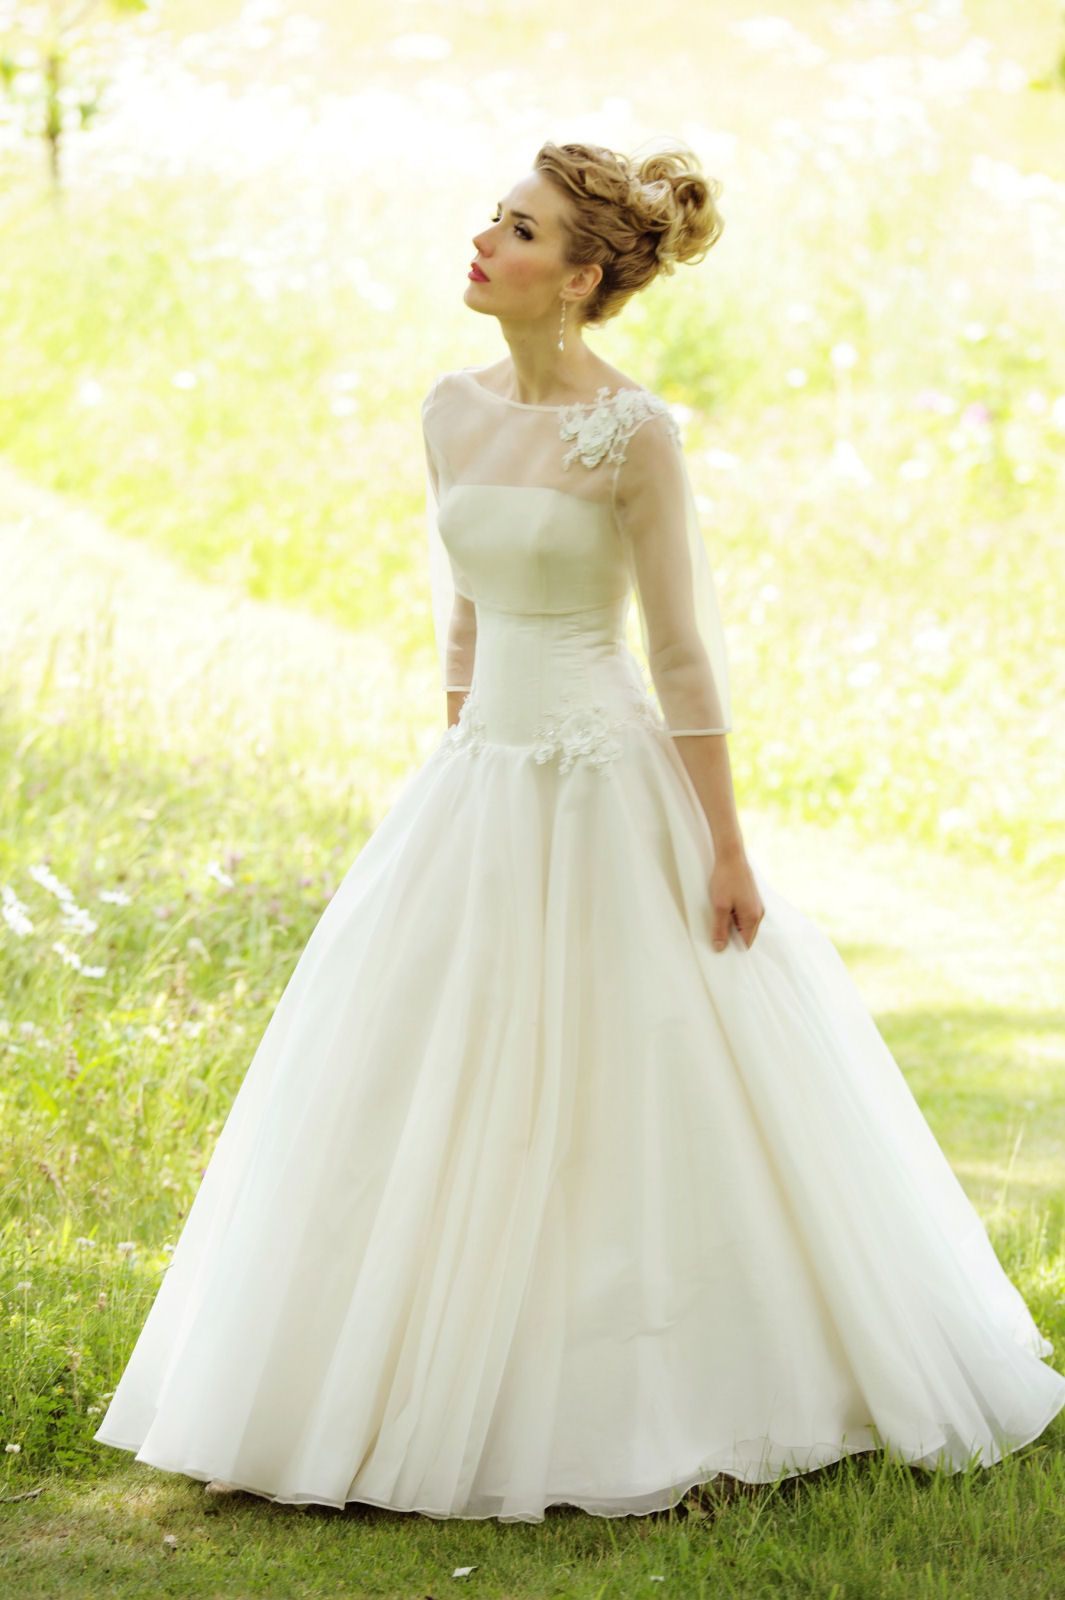 Grace Kelly style wedding dress by Lyn Ashworth | Weddings ...